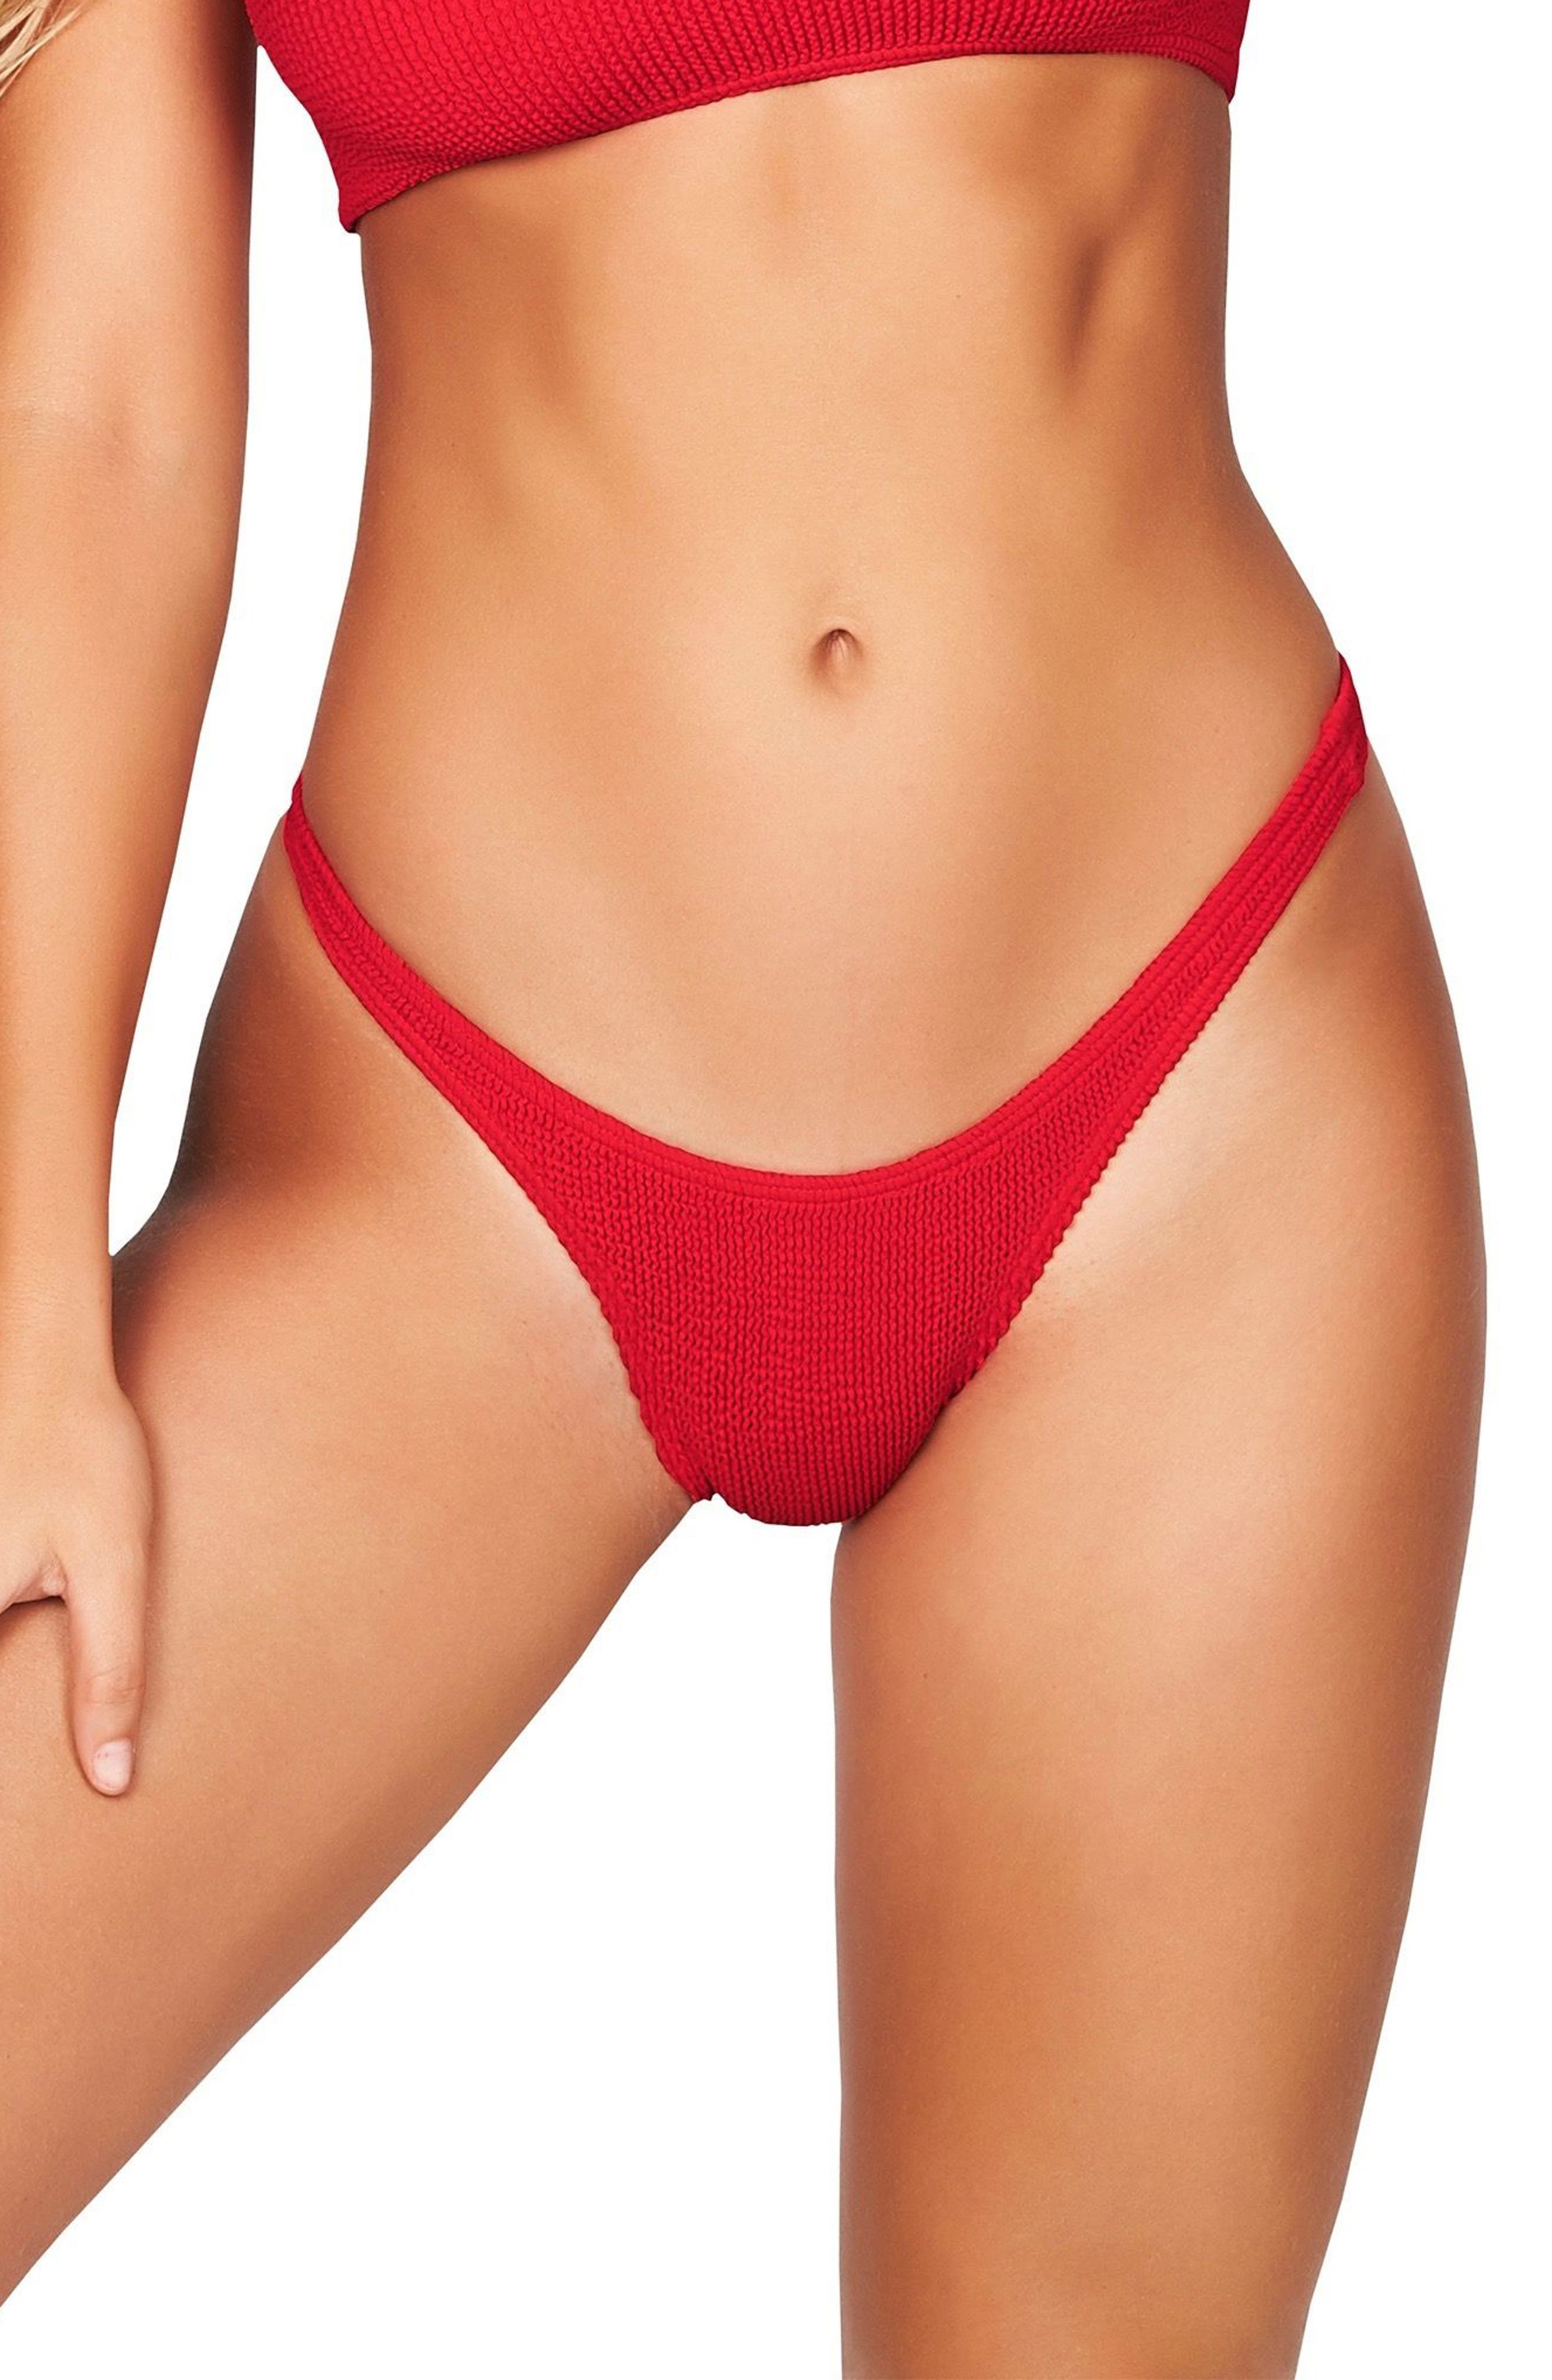 Bound By Bond-Eye The Scene High-Cut Ribbed Bikini Bottoms, Size One Size - Red